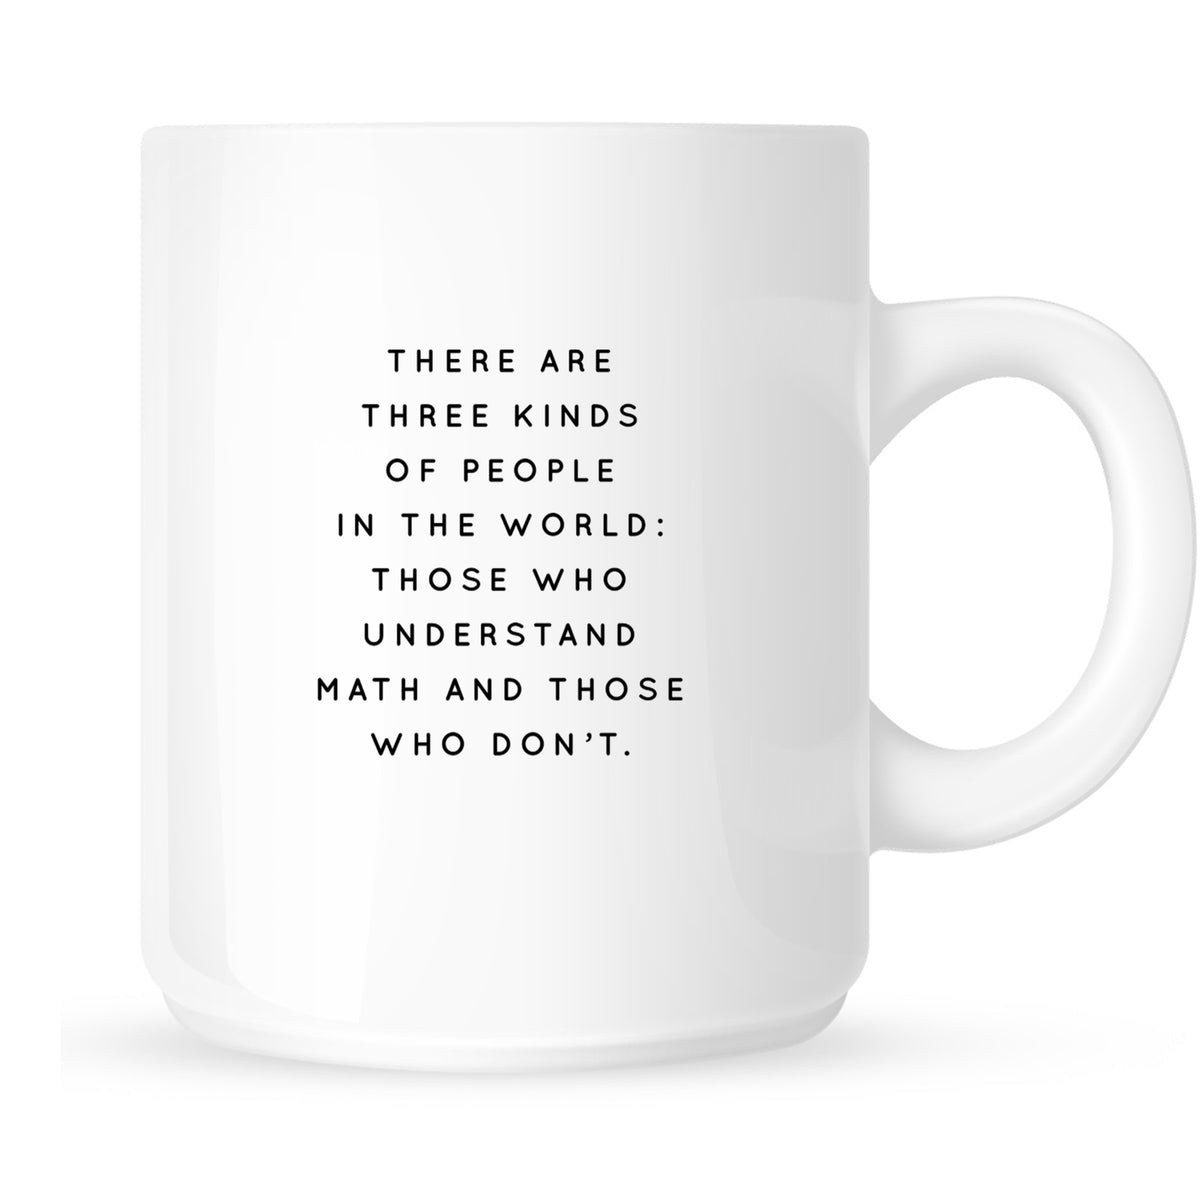 Mug - There Are Three Kinds of People in the World: Those Who Understand Math and Those Who Don't